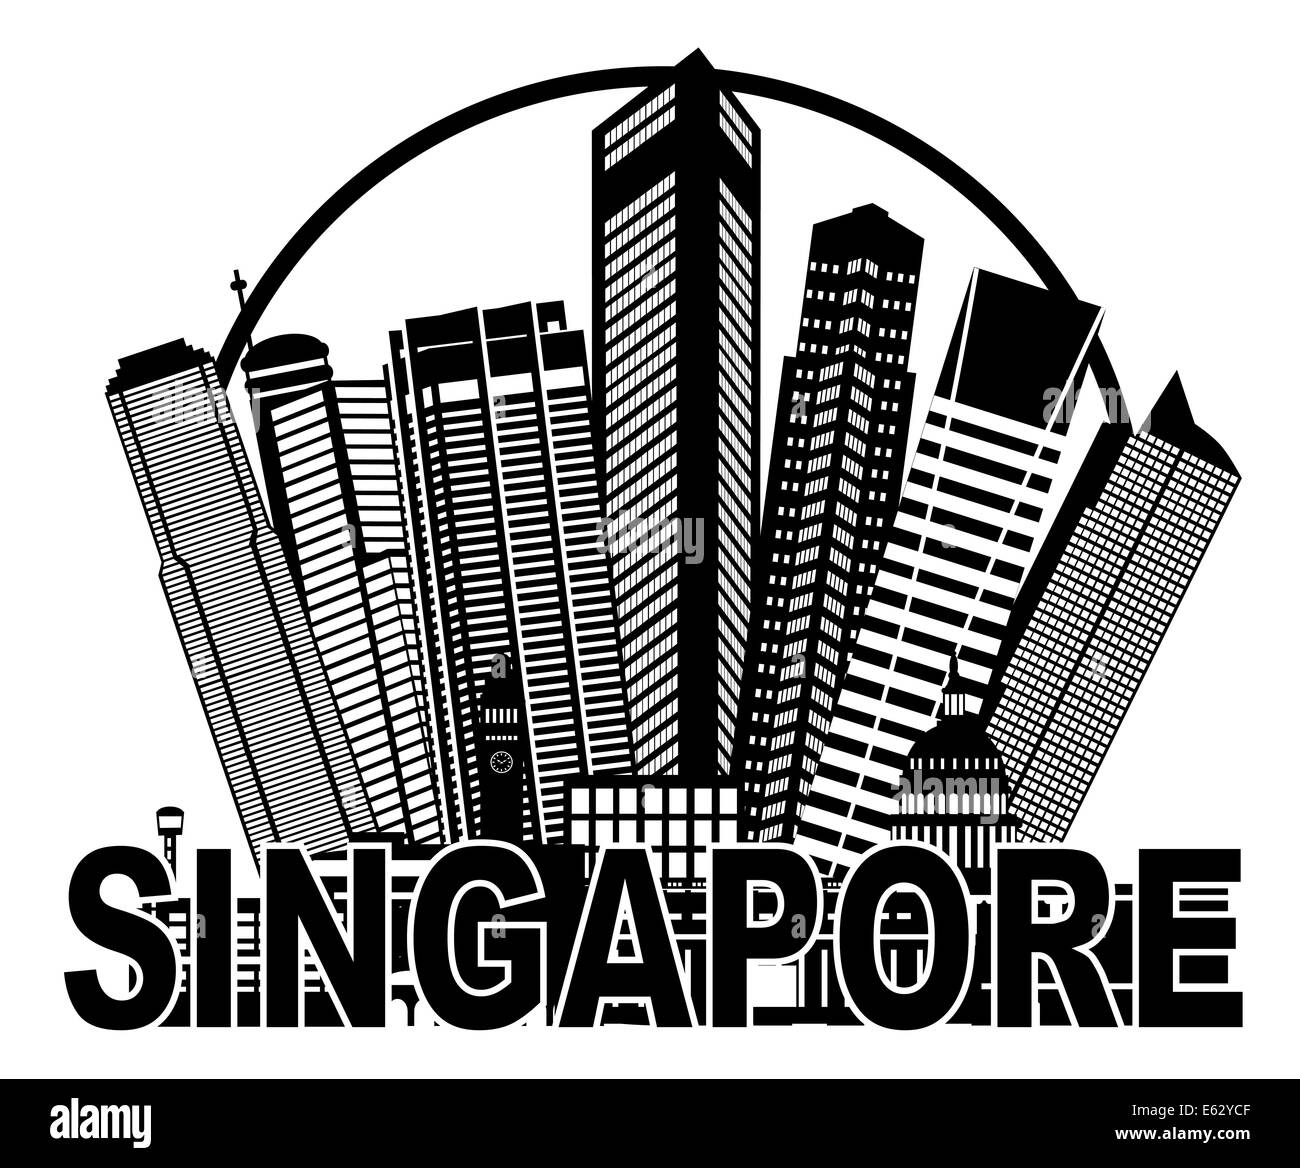 Singapore City Skyline Silhouette Outline in Circle Black Isolated on White Background Illustration - Stock Image